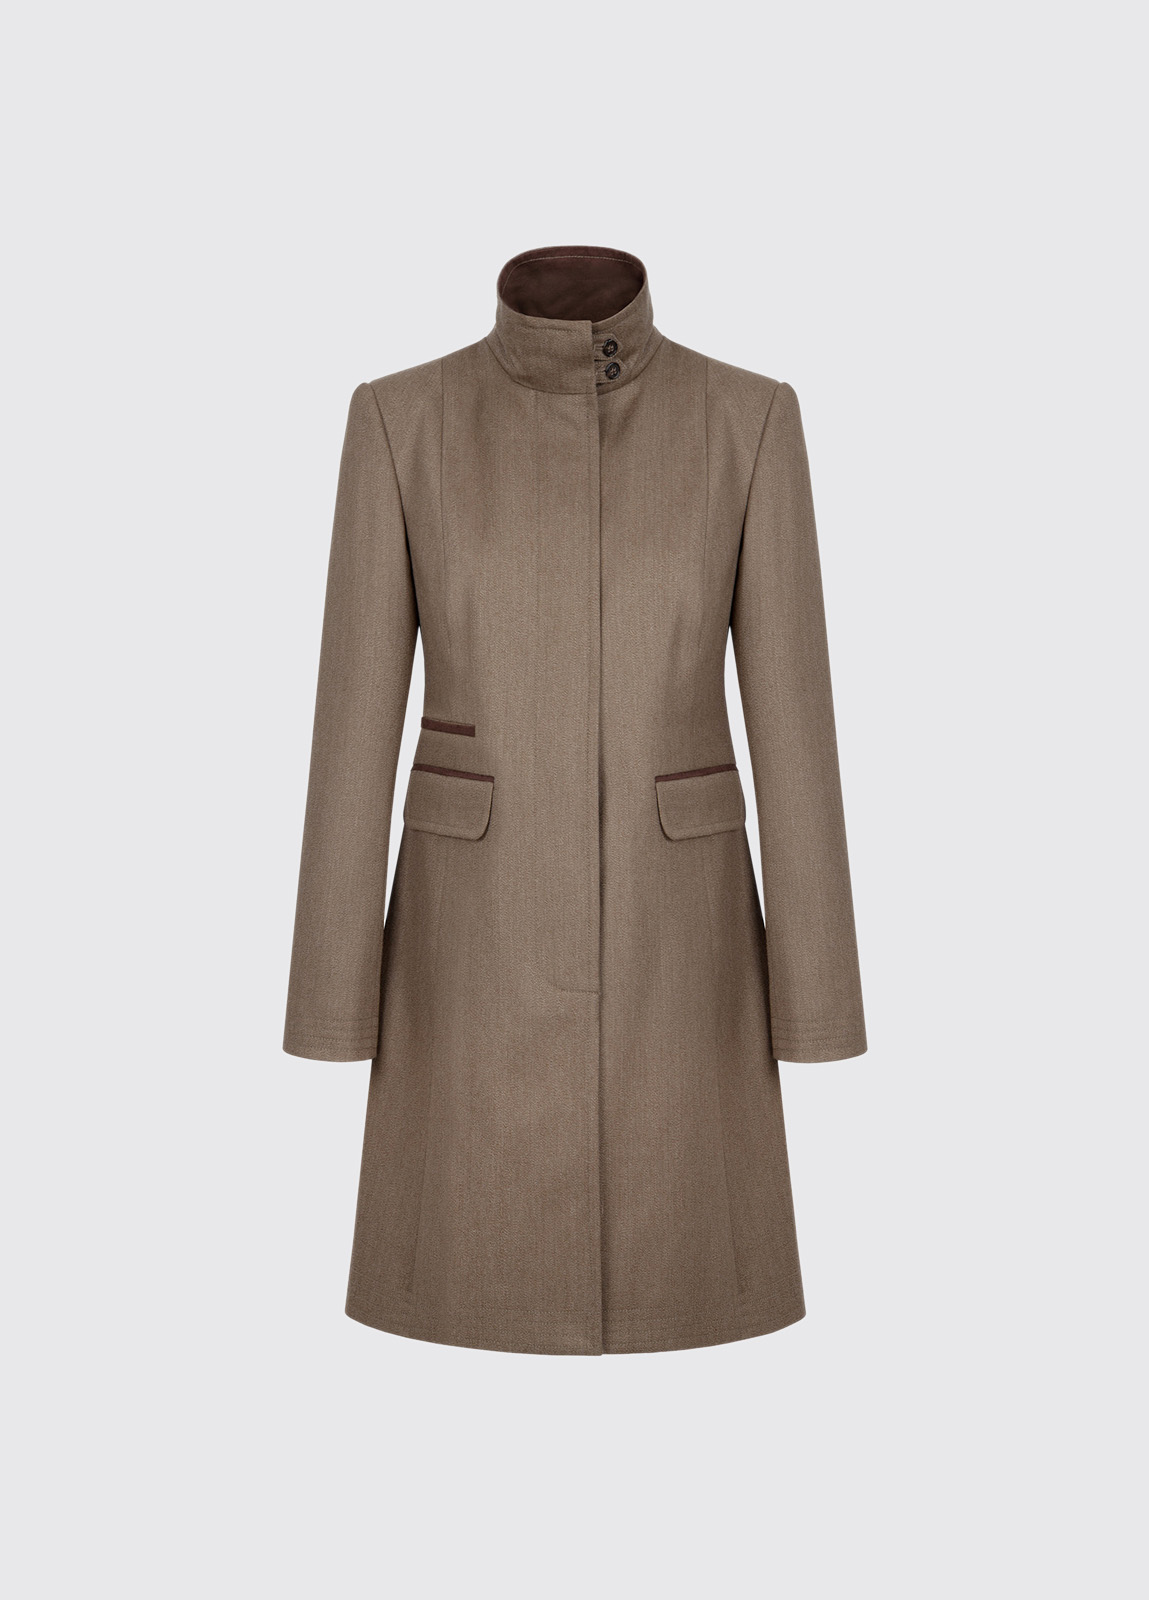 Elmtree Women's Covert Coat - Loden